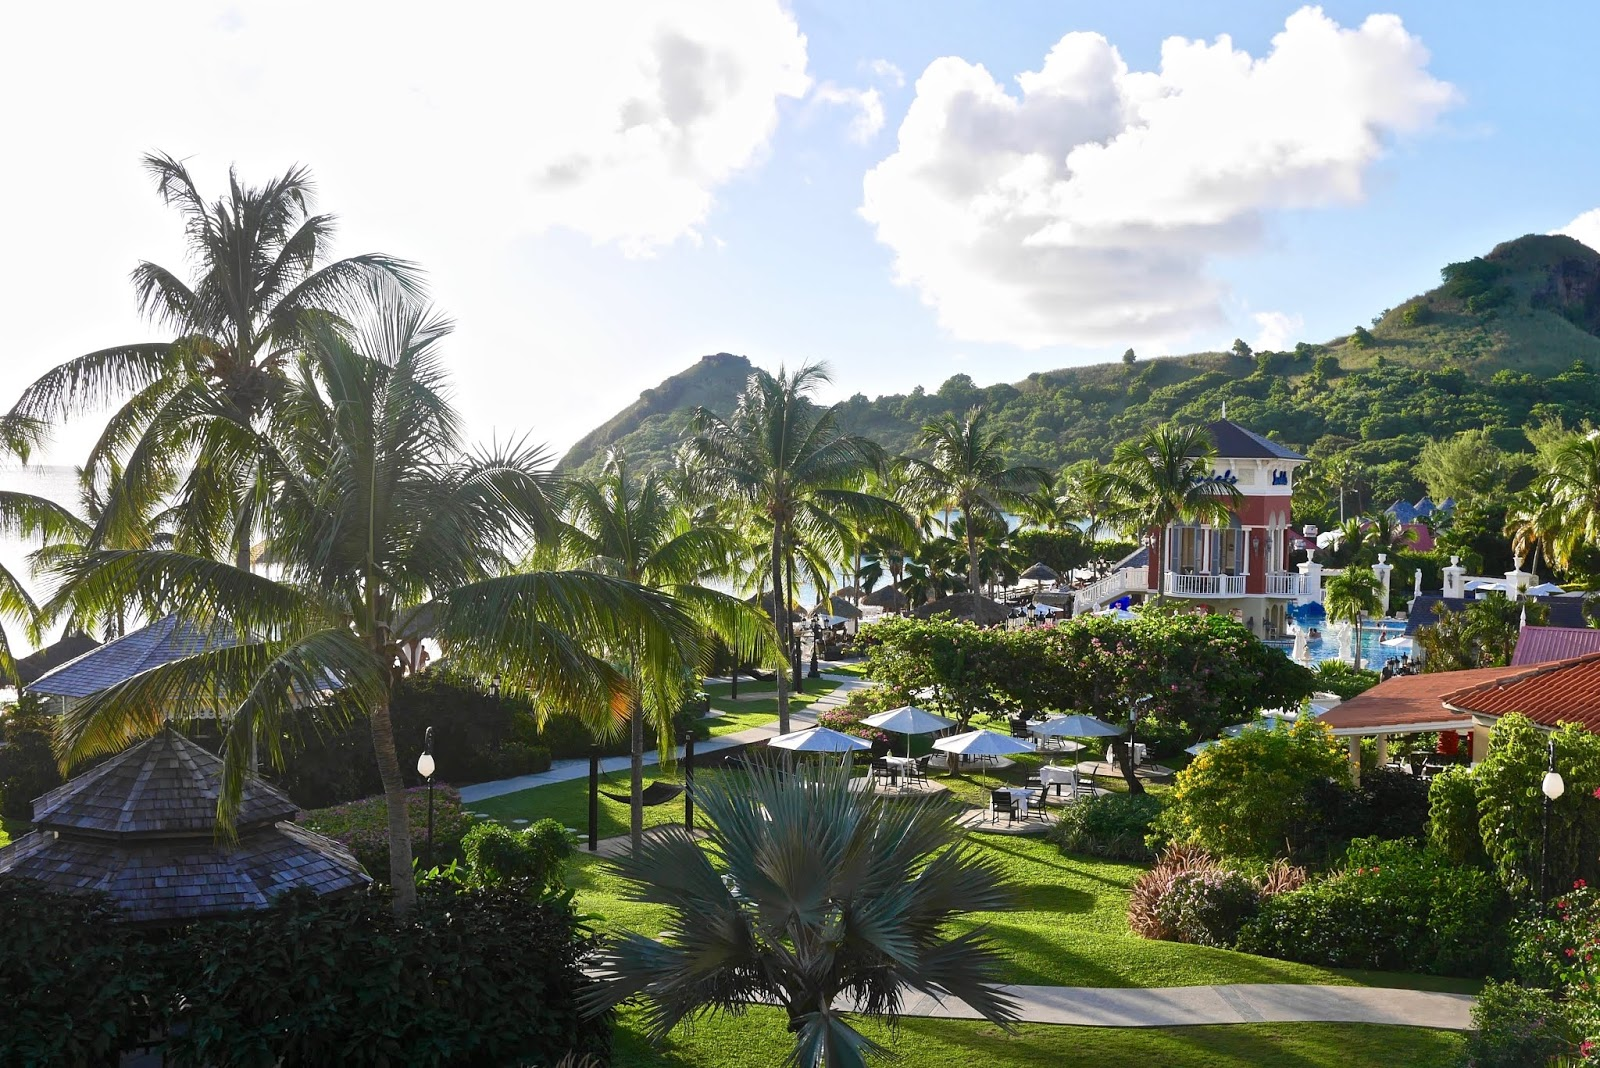 Sandals Grande St Lucia Club Ocean Room View, Sandals Grande St Lucia Review